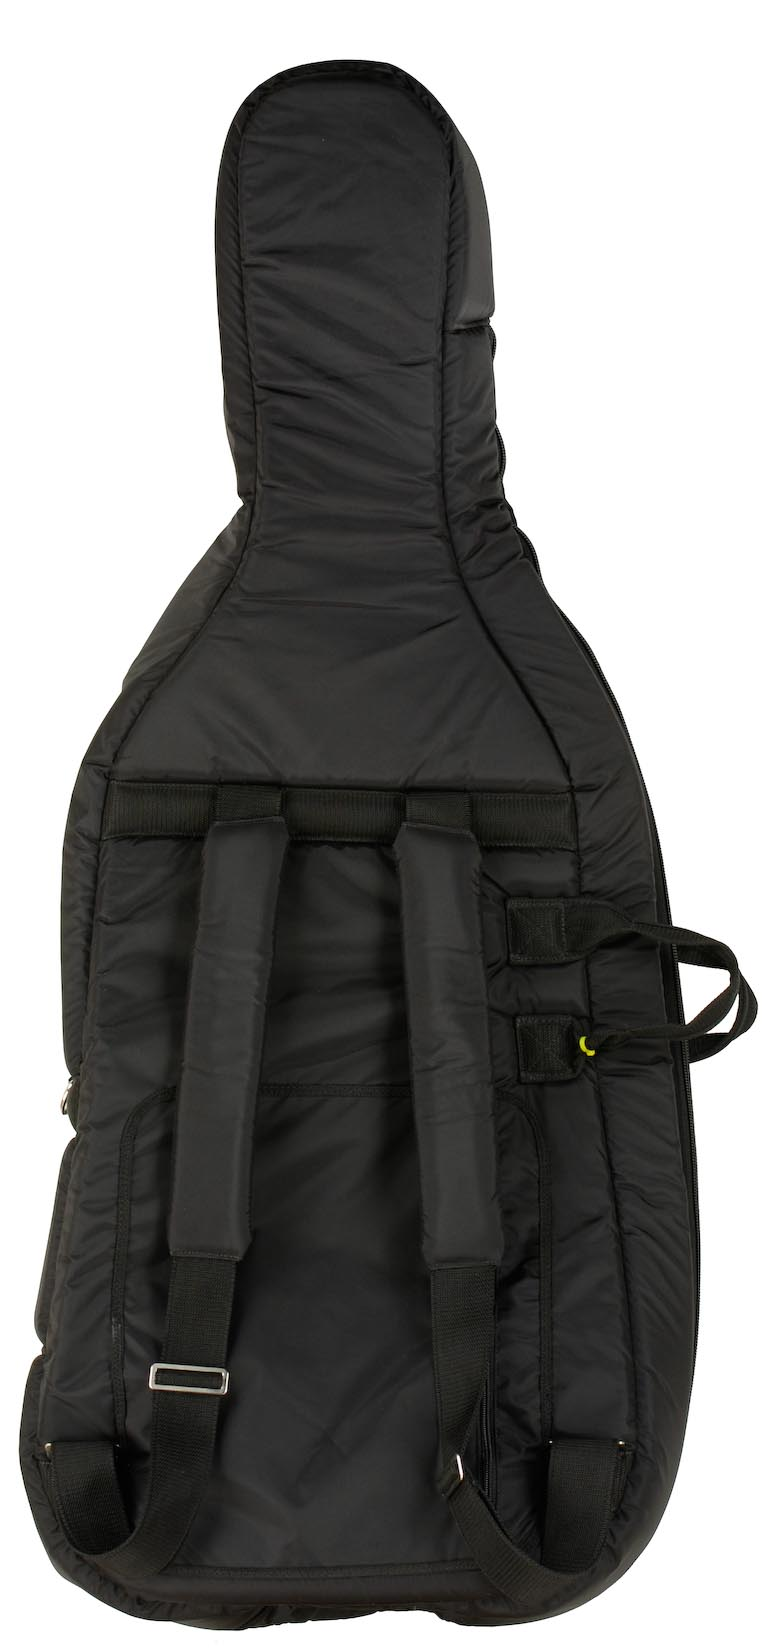 Hybrid/Carved Cello Rental Bag Back